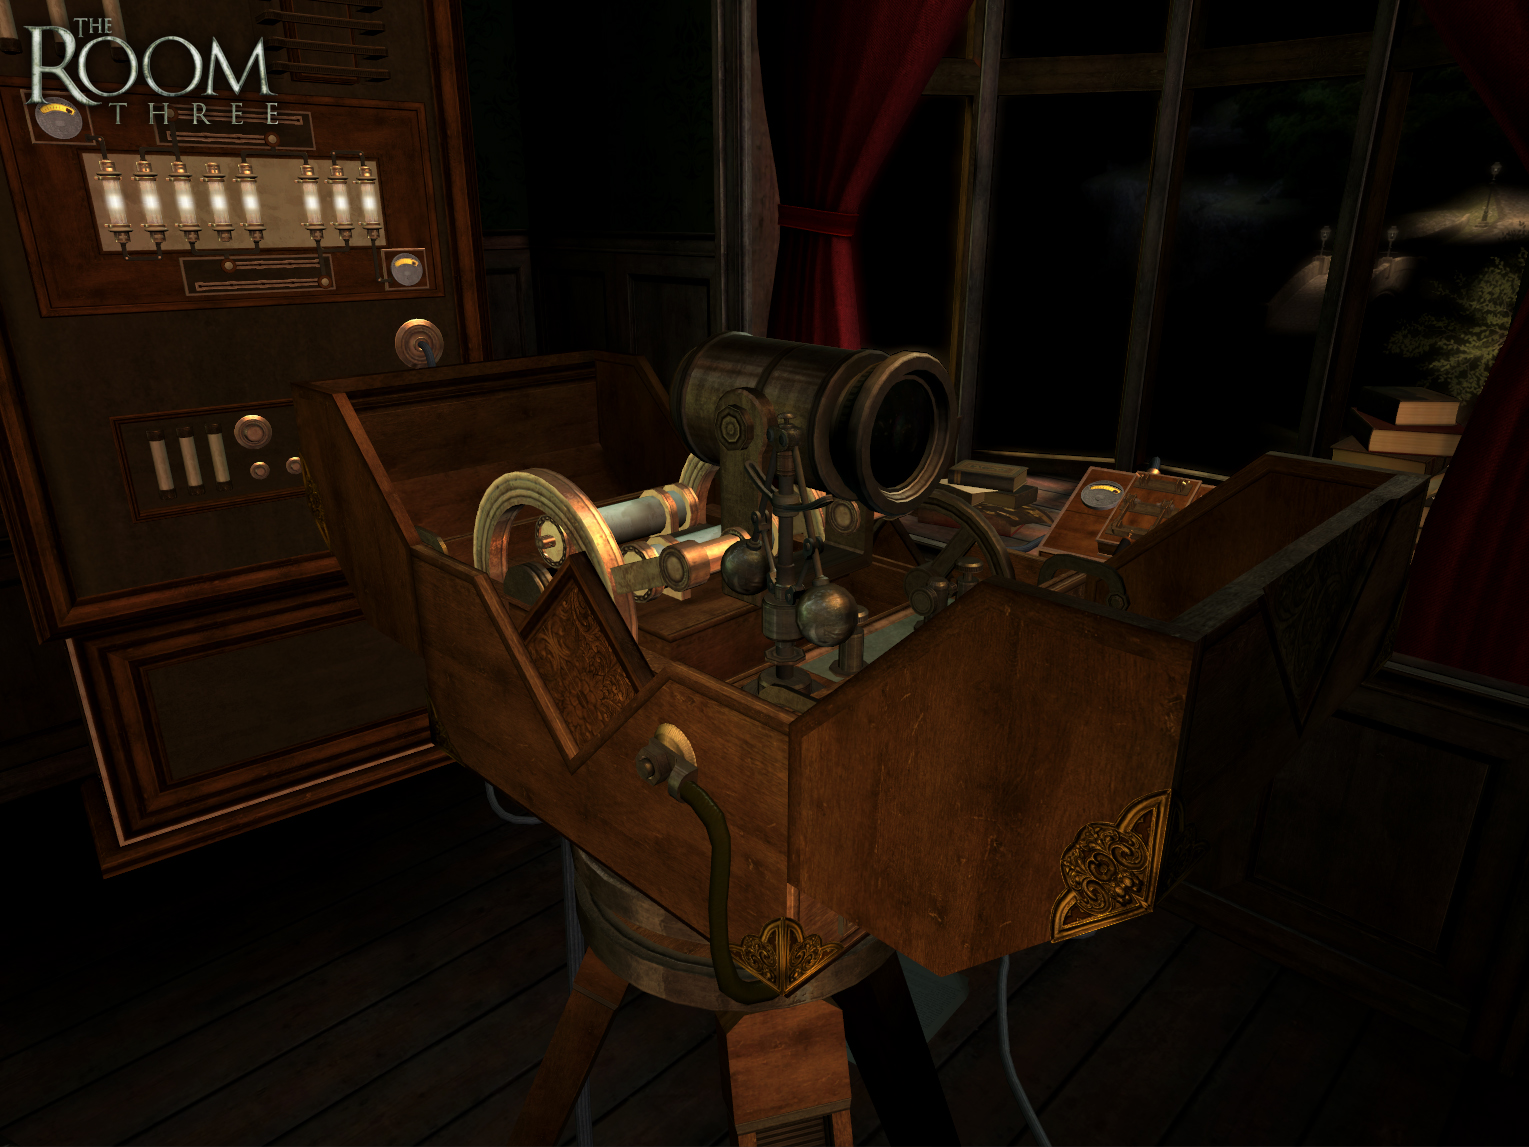 The Room Three Fireproof Games